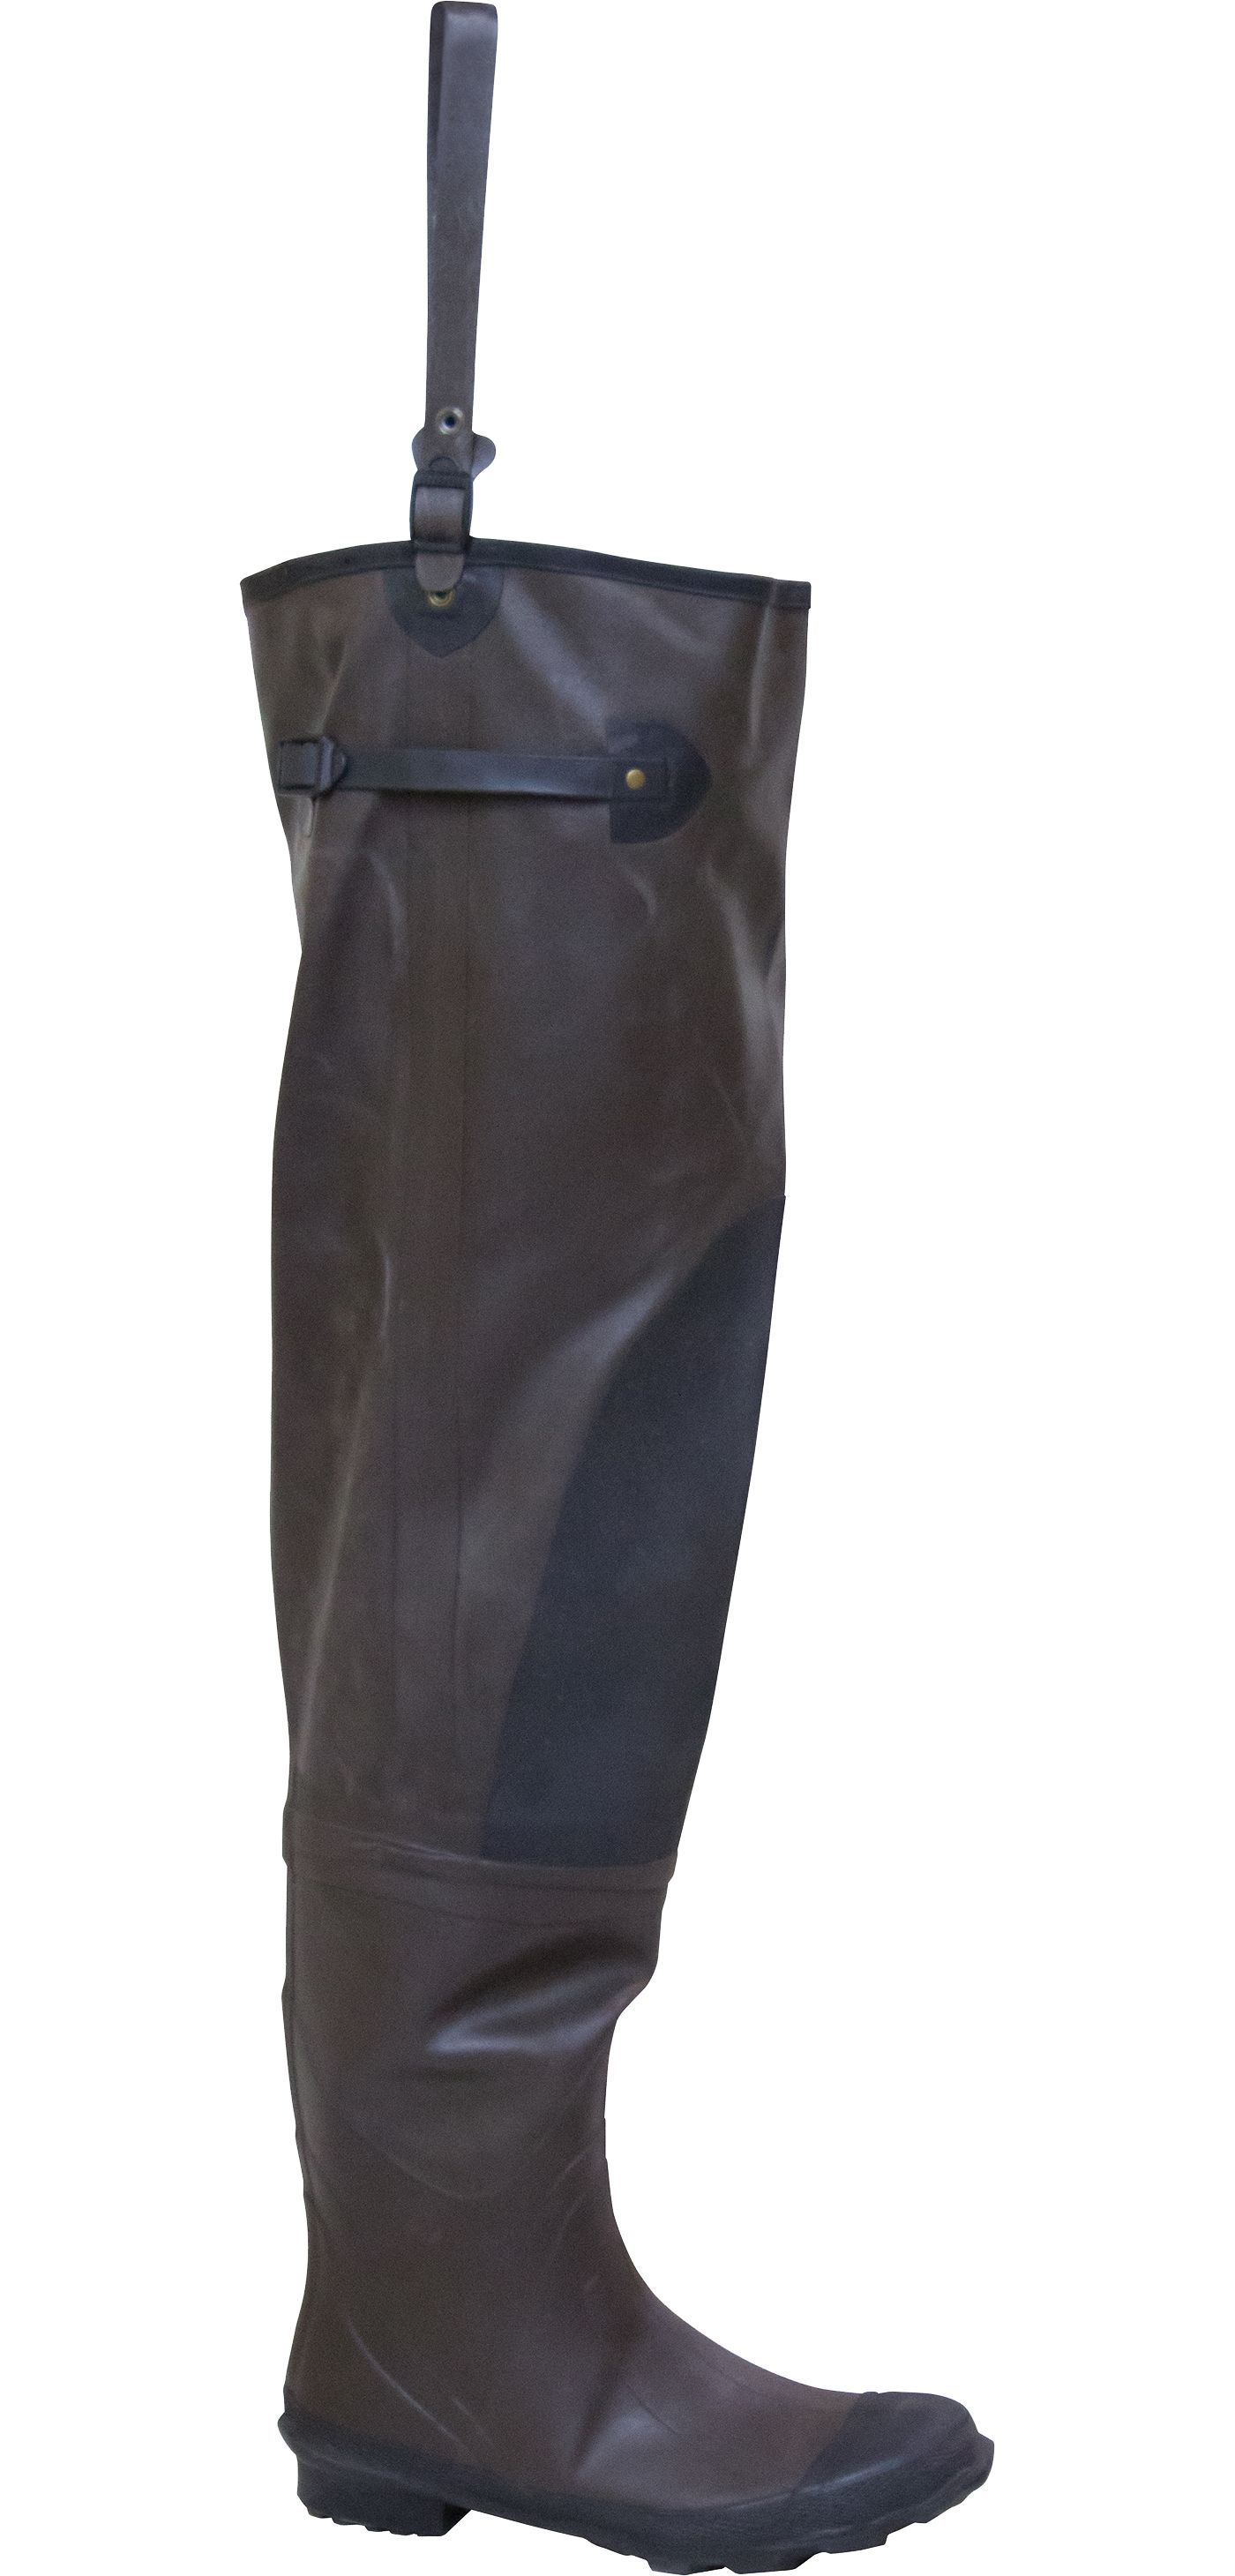 frogg toggs Classic Rubber Hip Waders